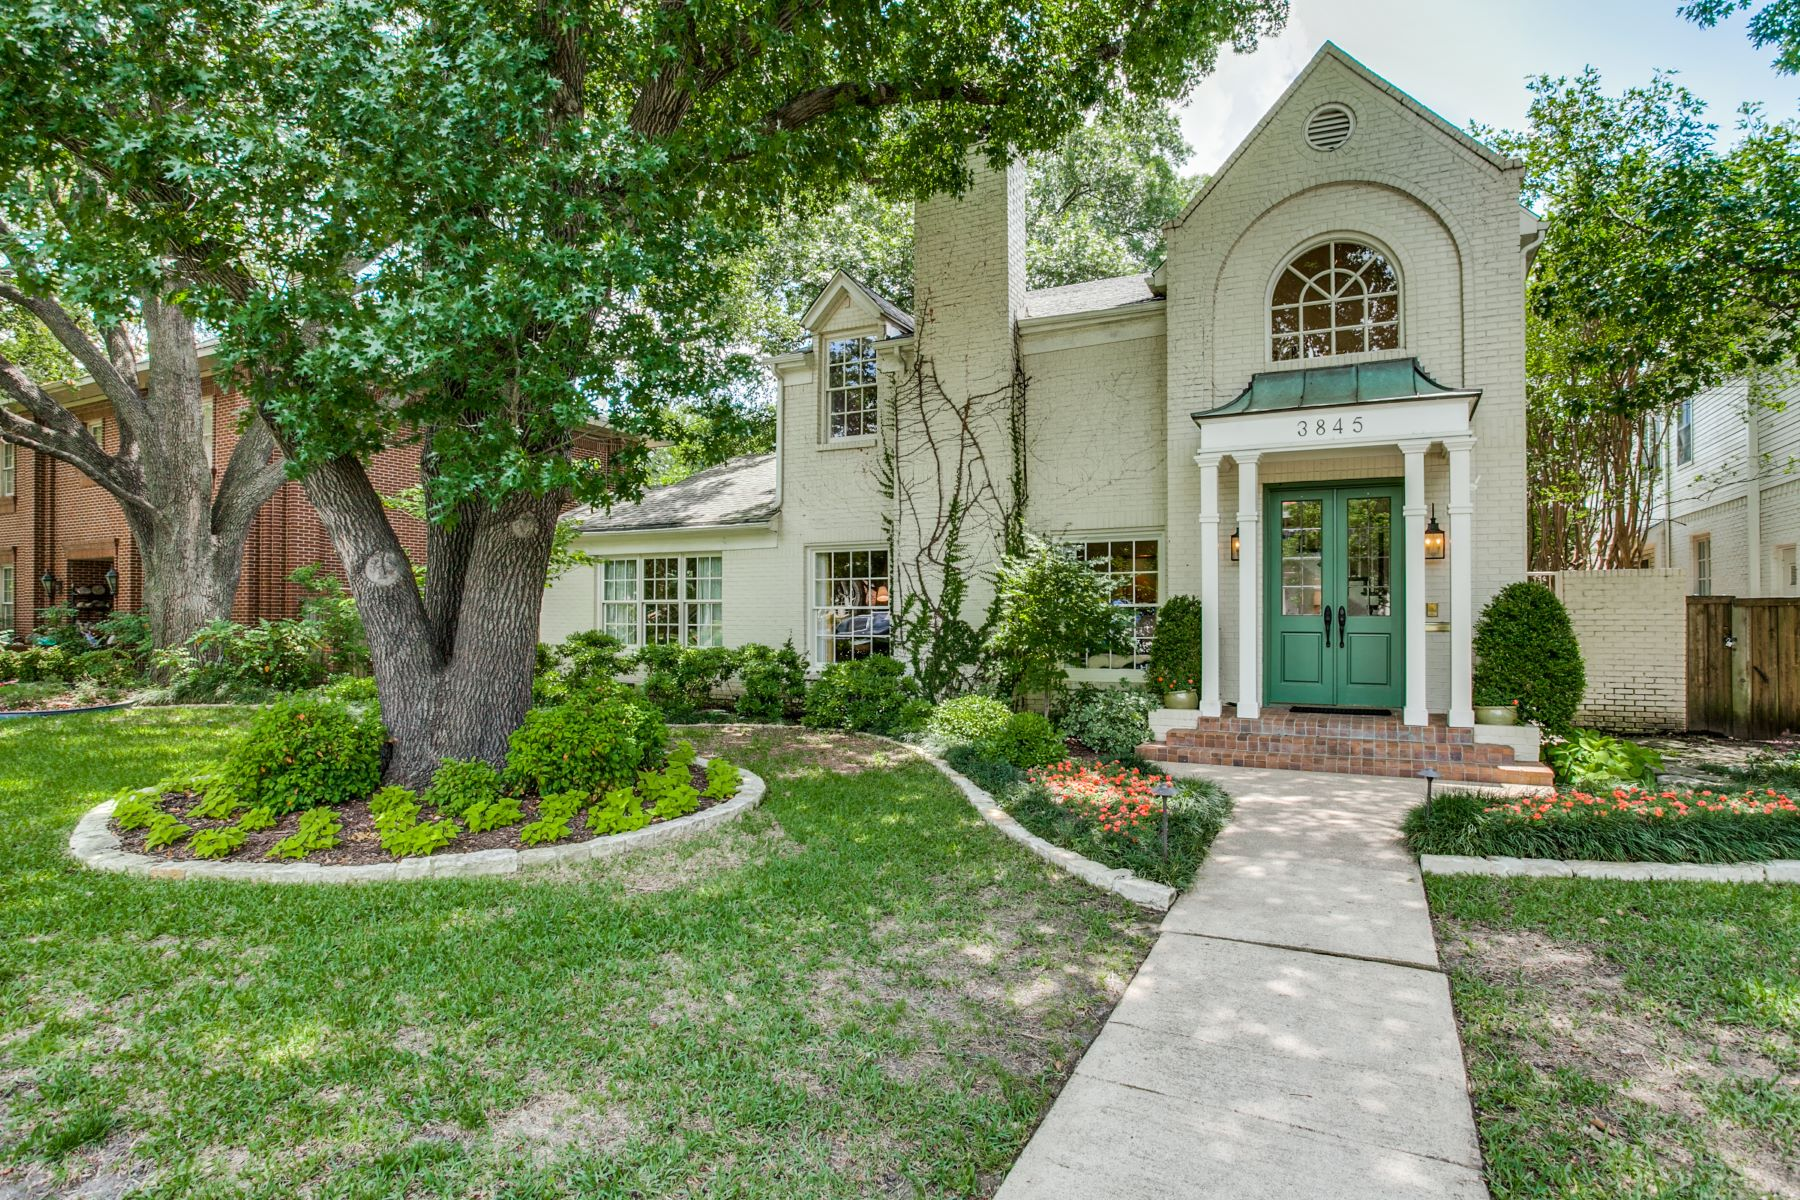 Single Family Homes for Active at University Park Traditional 3845 Greenbrier Drive University Park, Texas 75225 United States